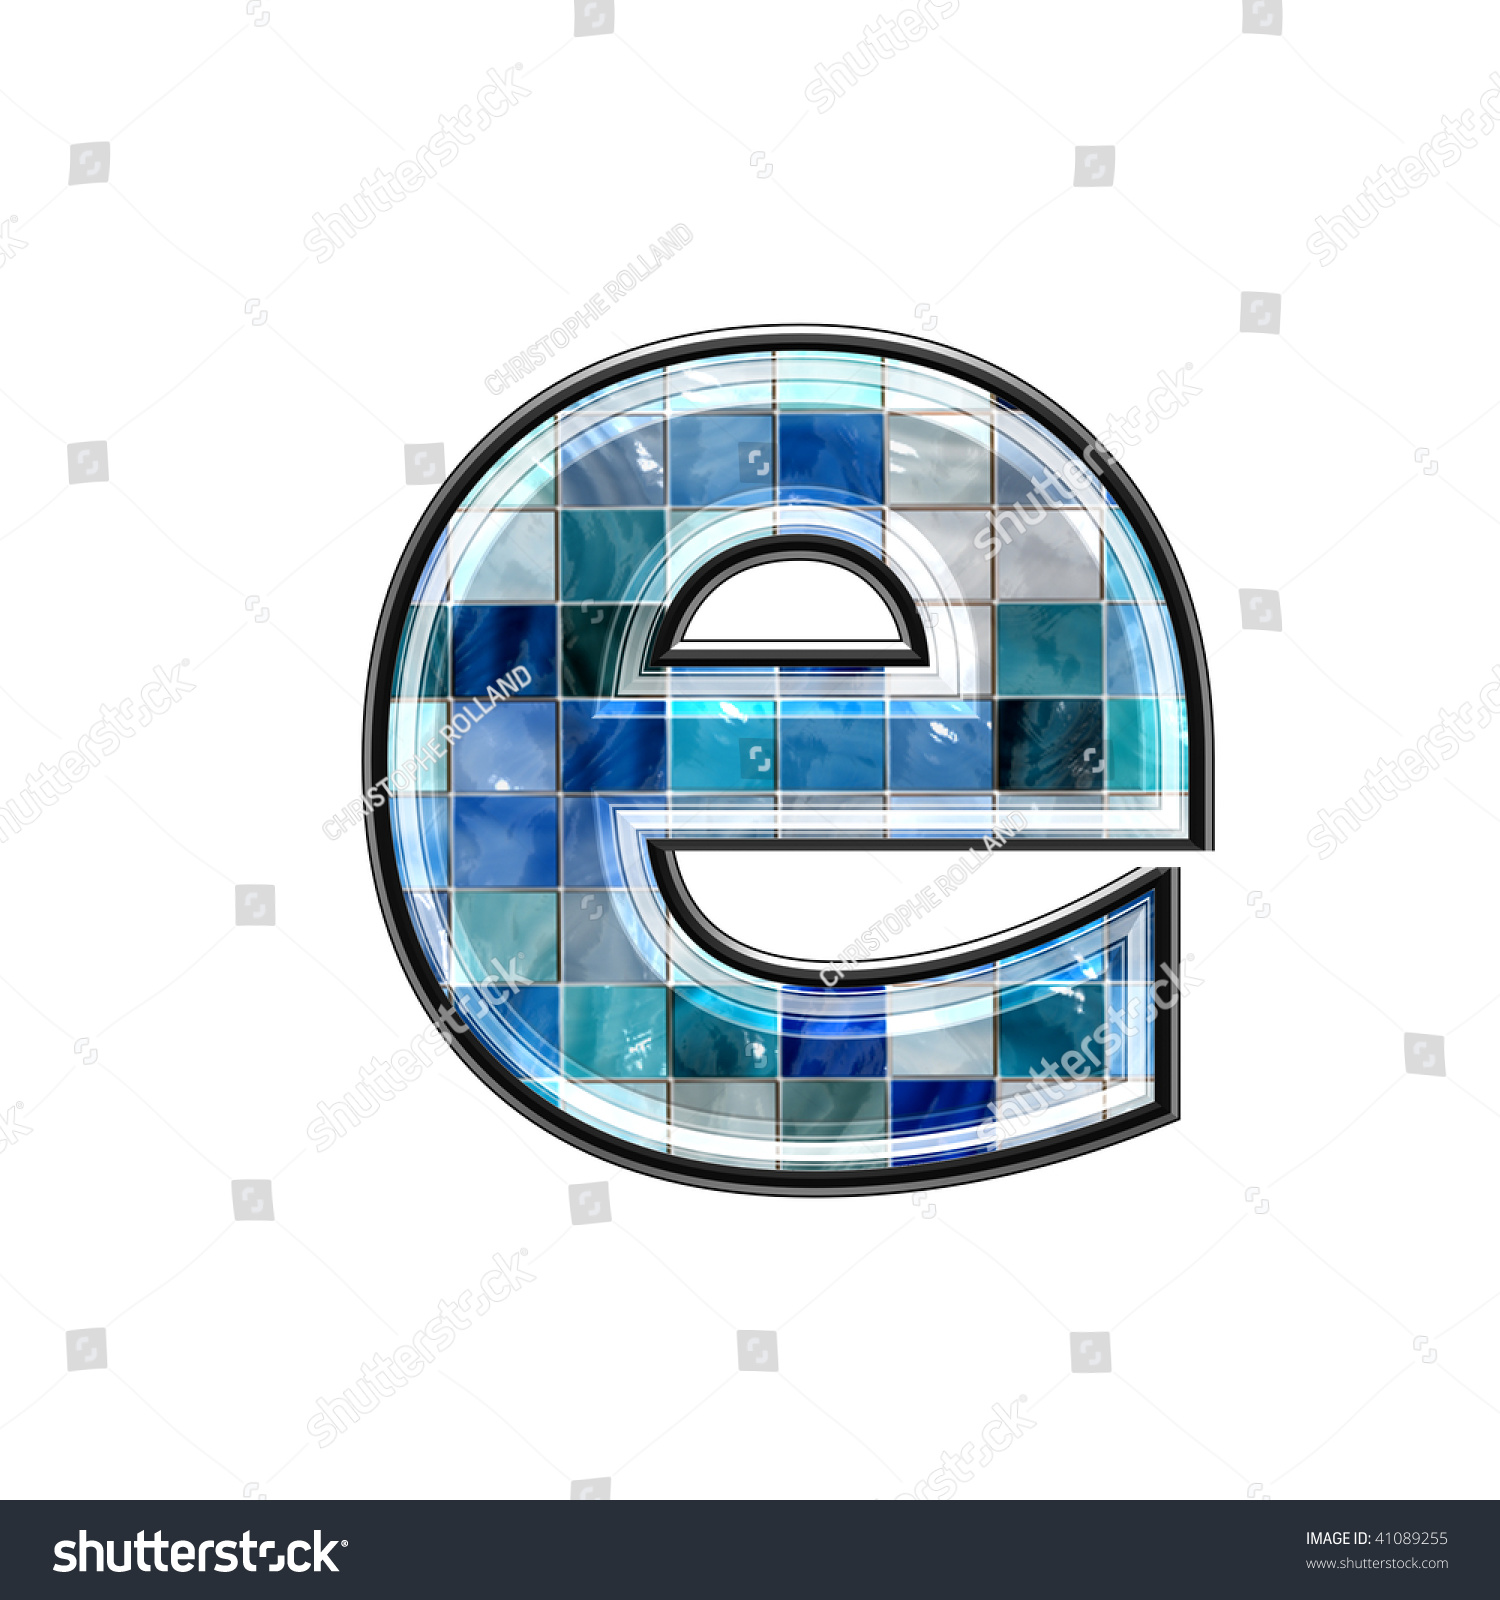 Ceramic letter tiles image collections tile flooring design ideas letter ceramic tiles gallery tile flooring design ideas letter ceramic tiles choice image tile flooring design dailygadgetfo Gallery